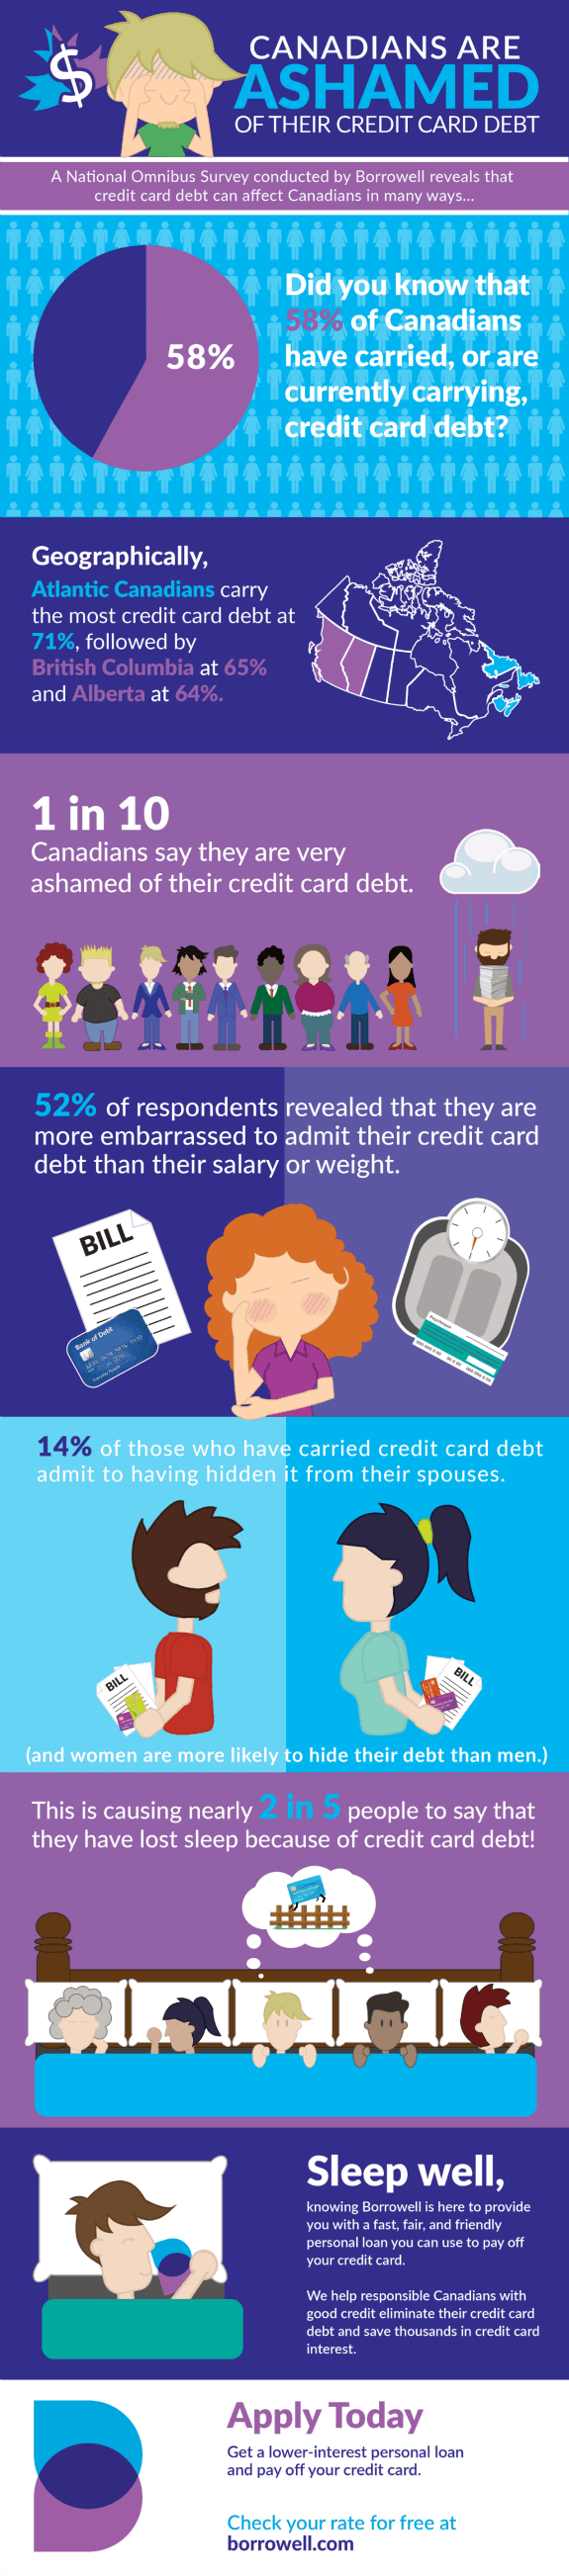 Canadians are ashamed of their credit card debt